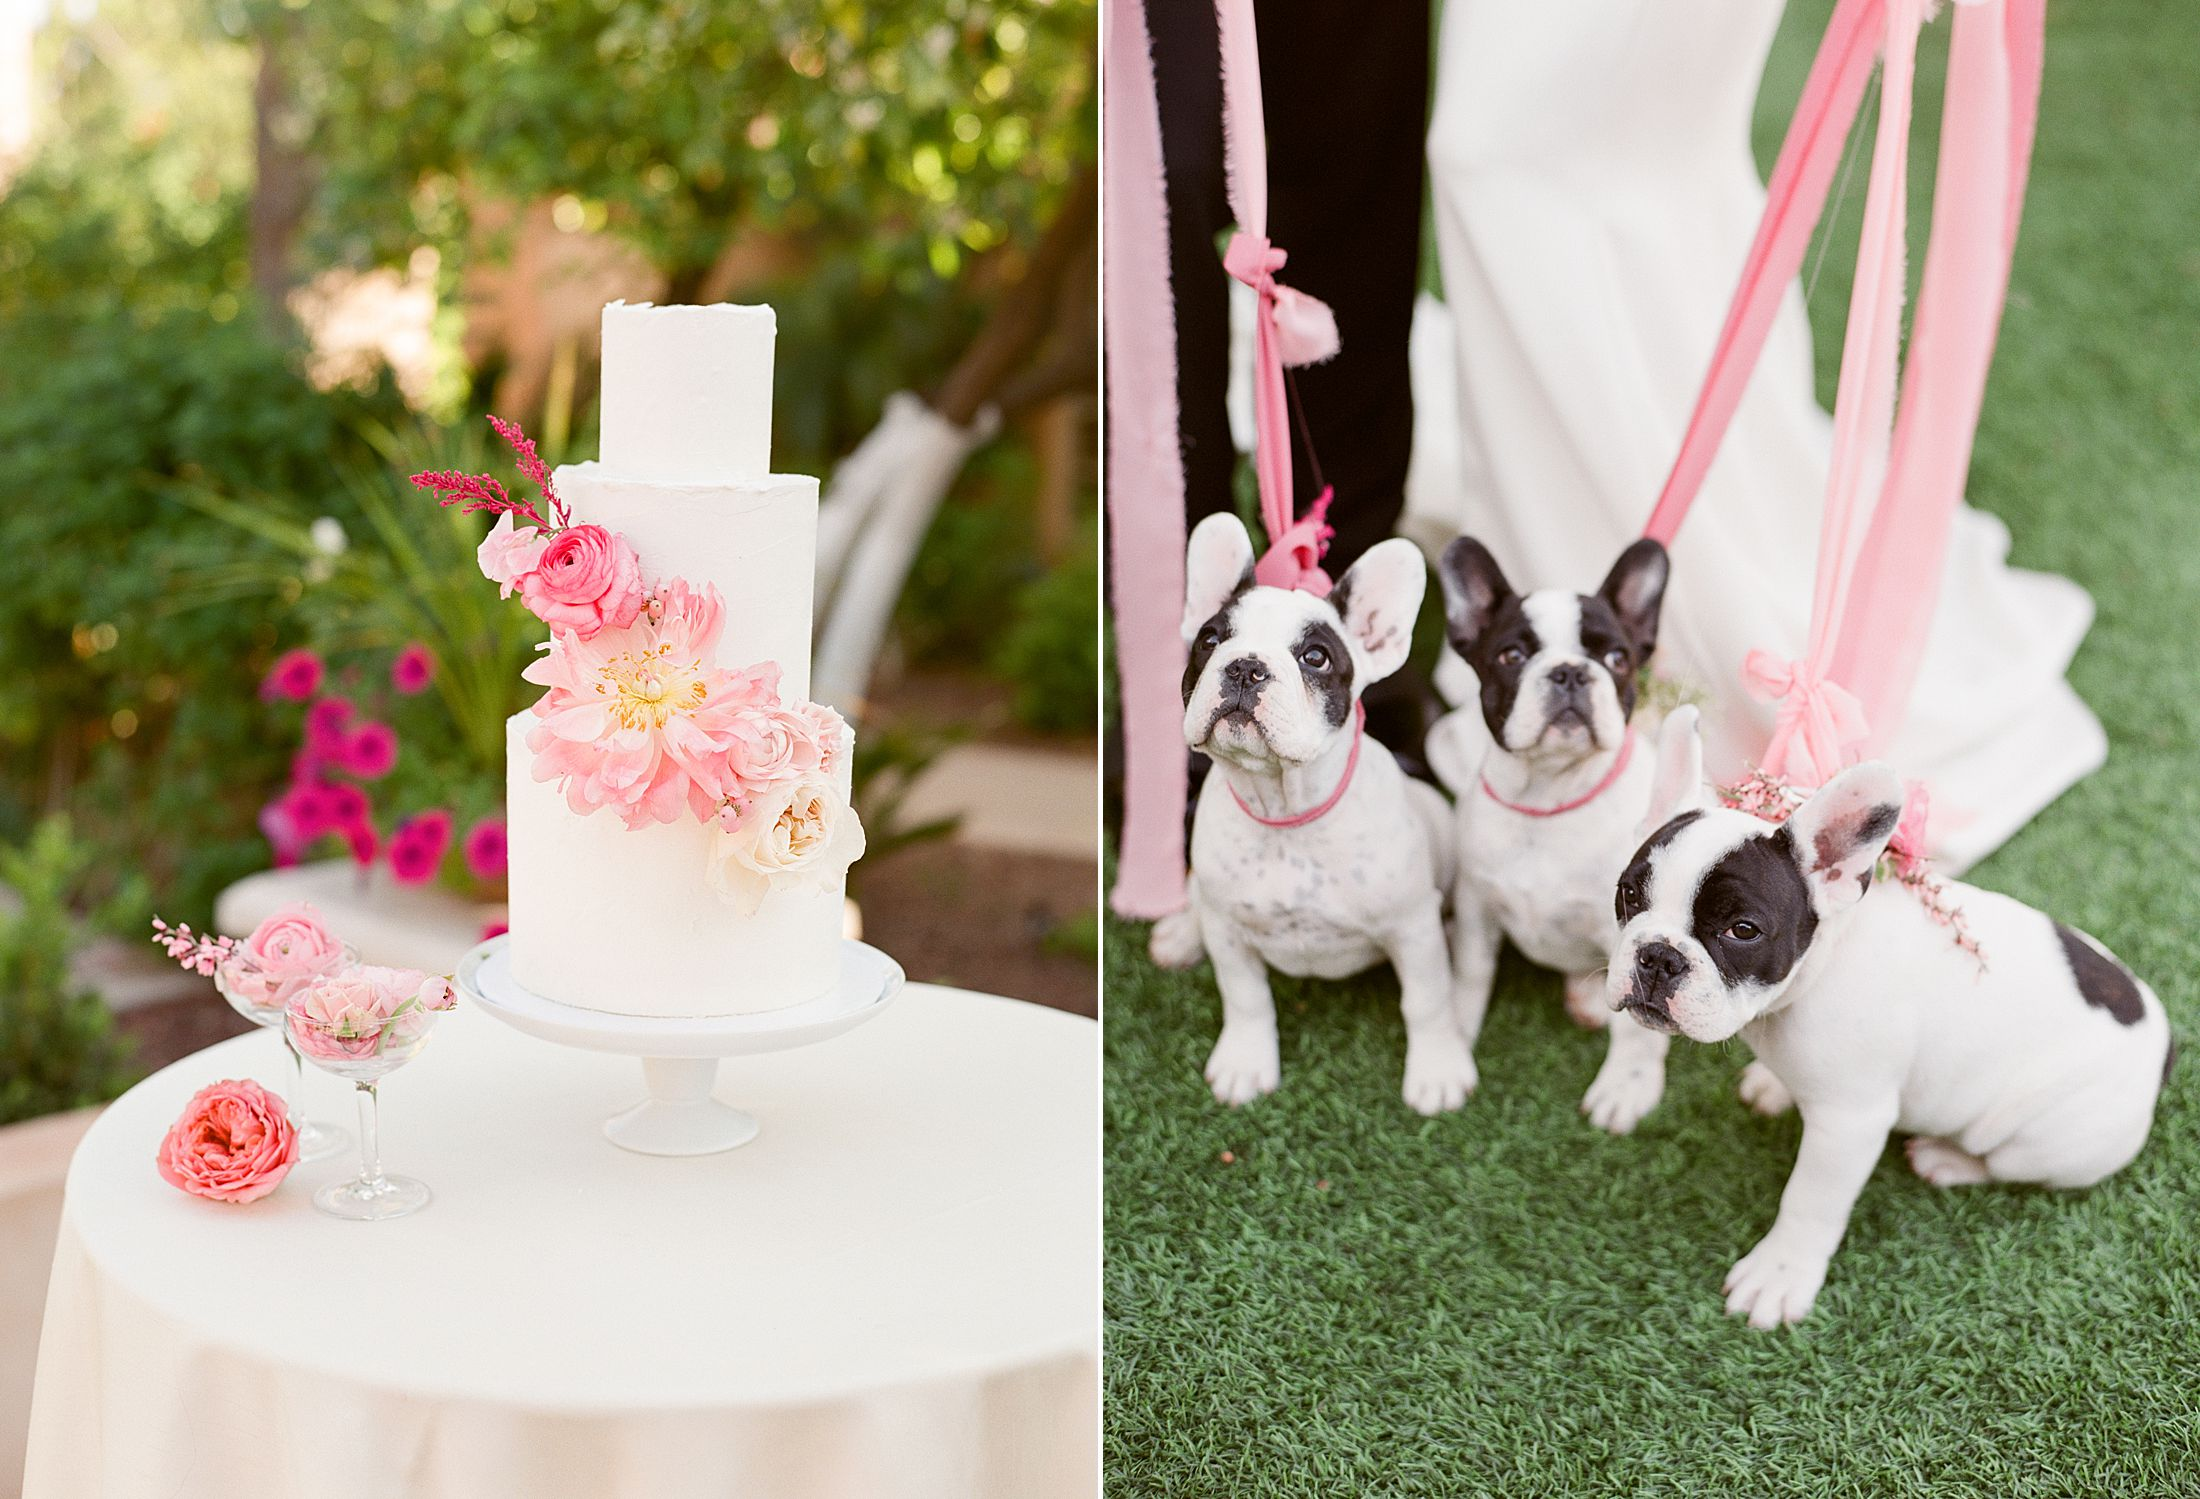 Pink Ombre Wedding Inspiration on Style Me Pretty - Royal Palms Wedding - Scottsdale Wedding - Ashley Baumgartner - Bloom and Blueprint - Wedding Puppies - Bulldog Puppies_0032.jpg